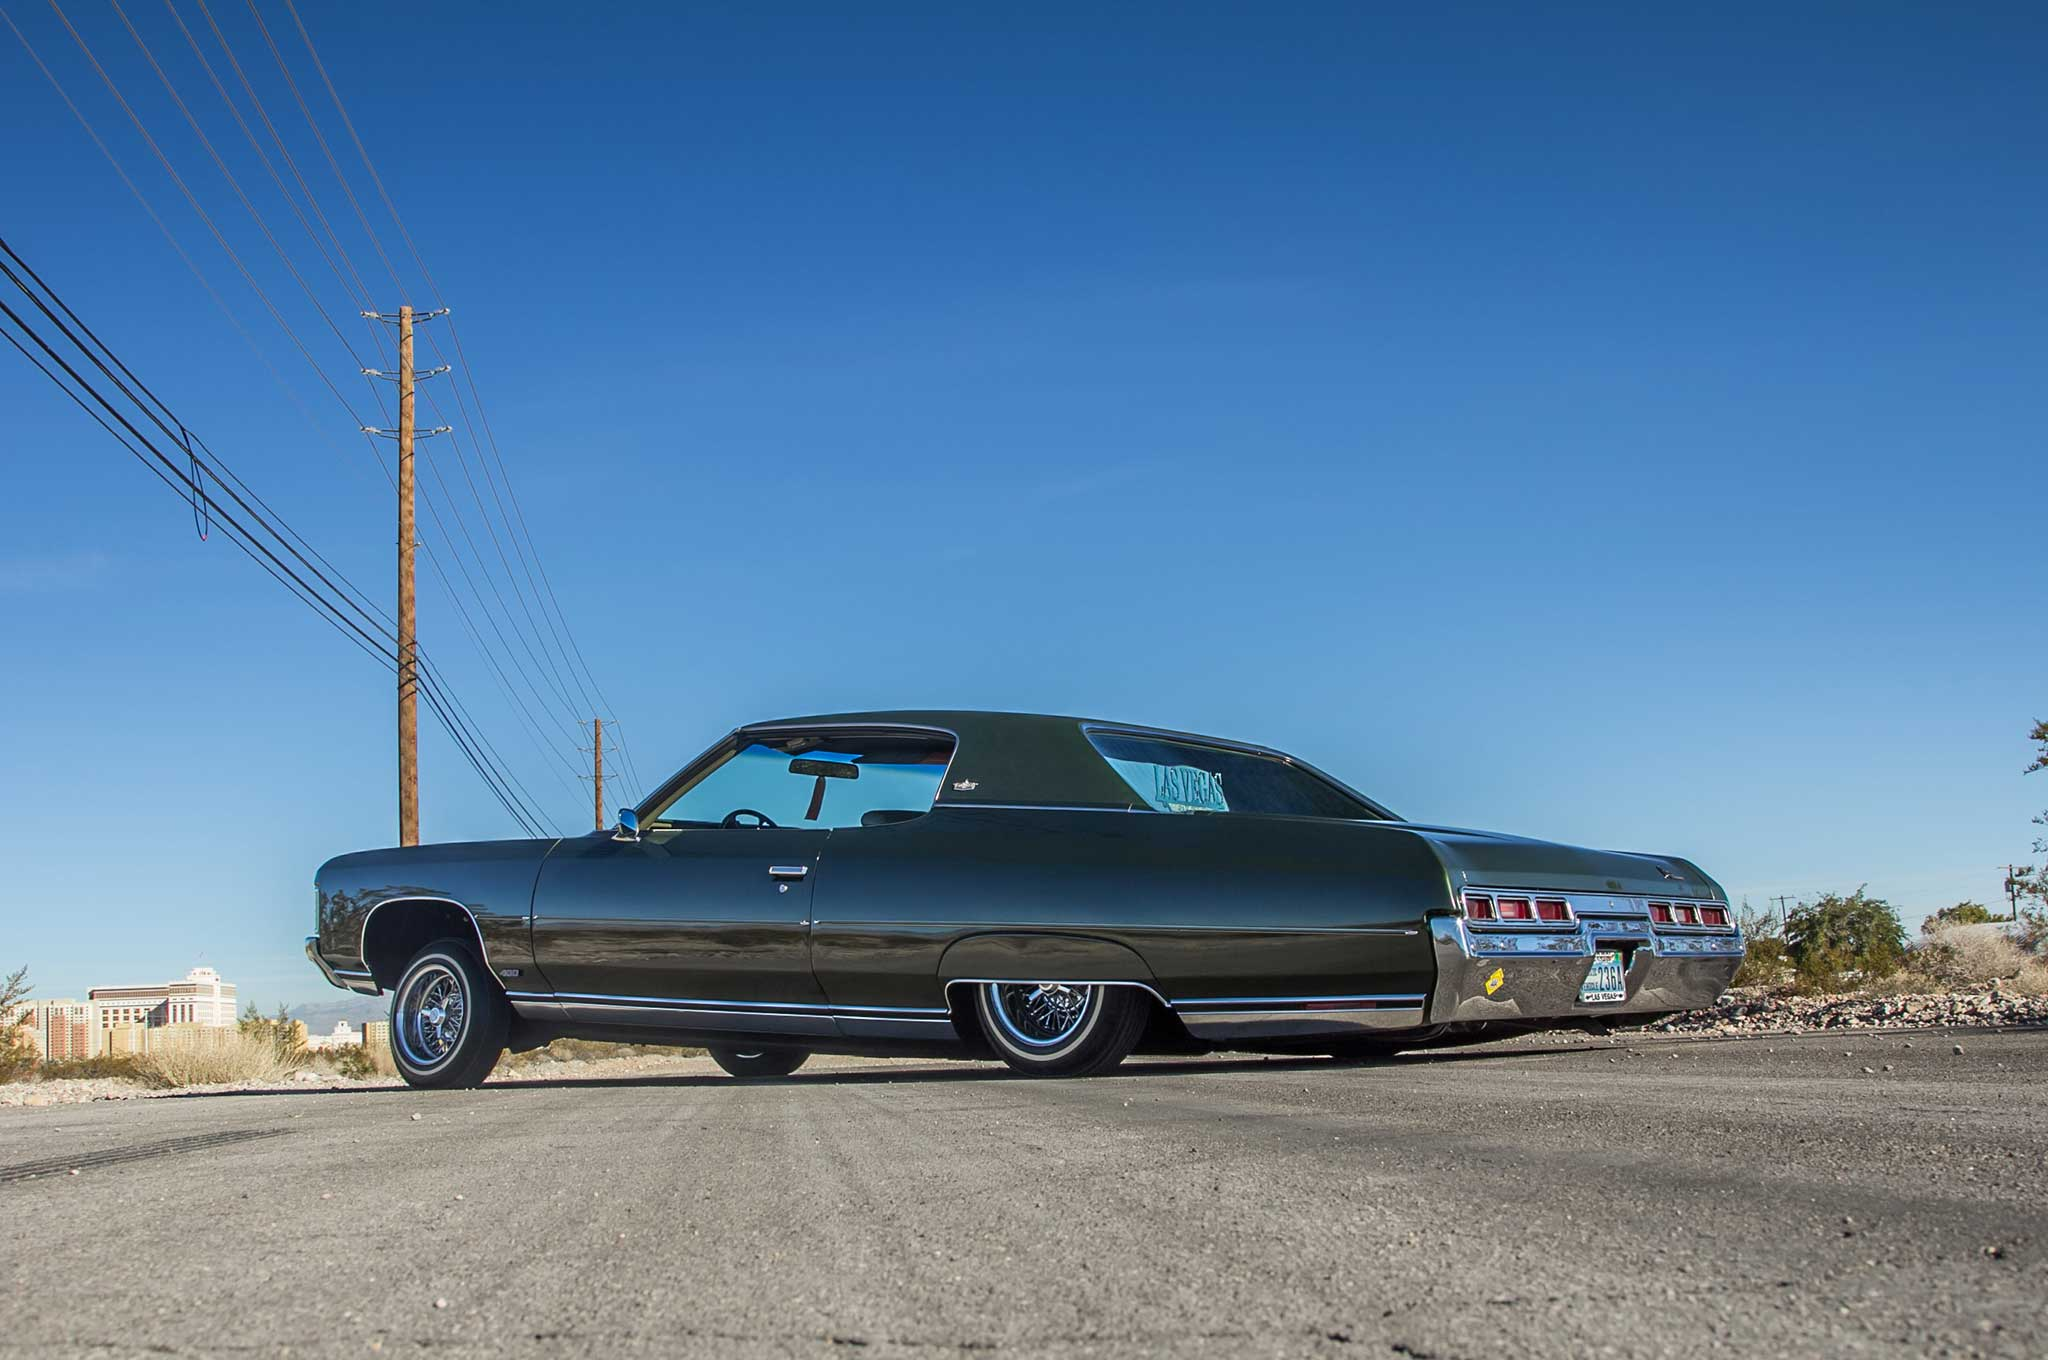 1971 Chevrolet Caprice - Frozen in Time - Lowrider